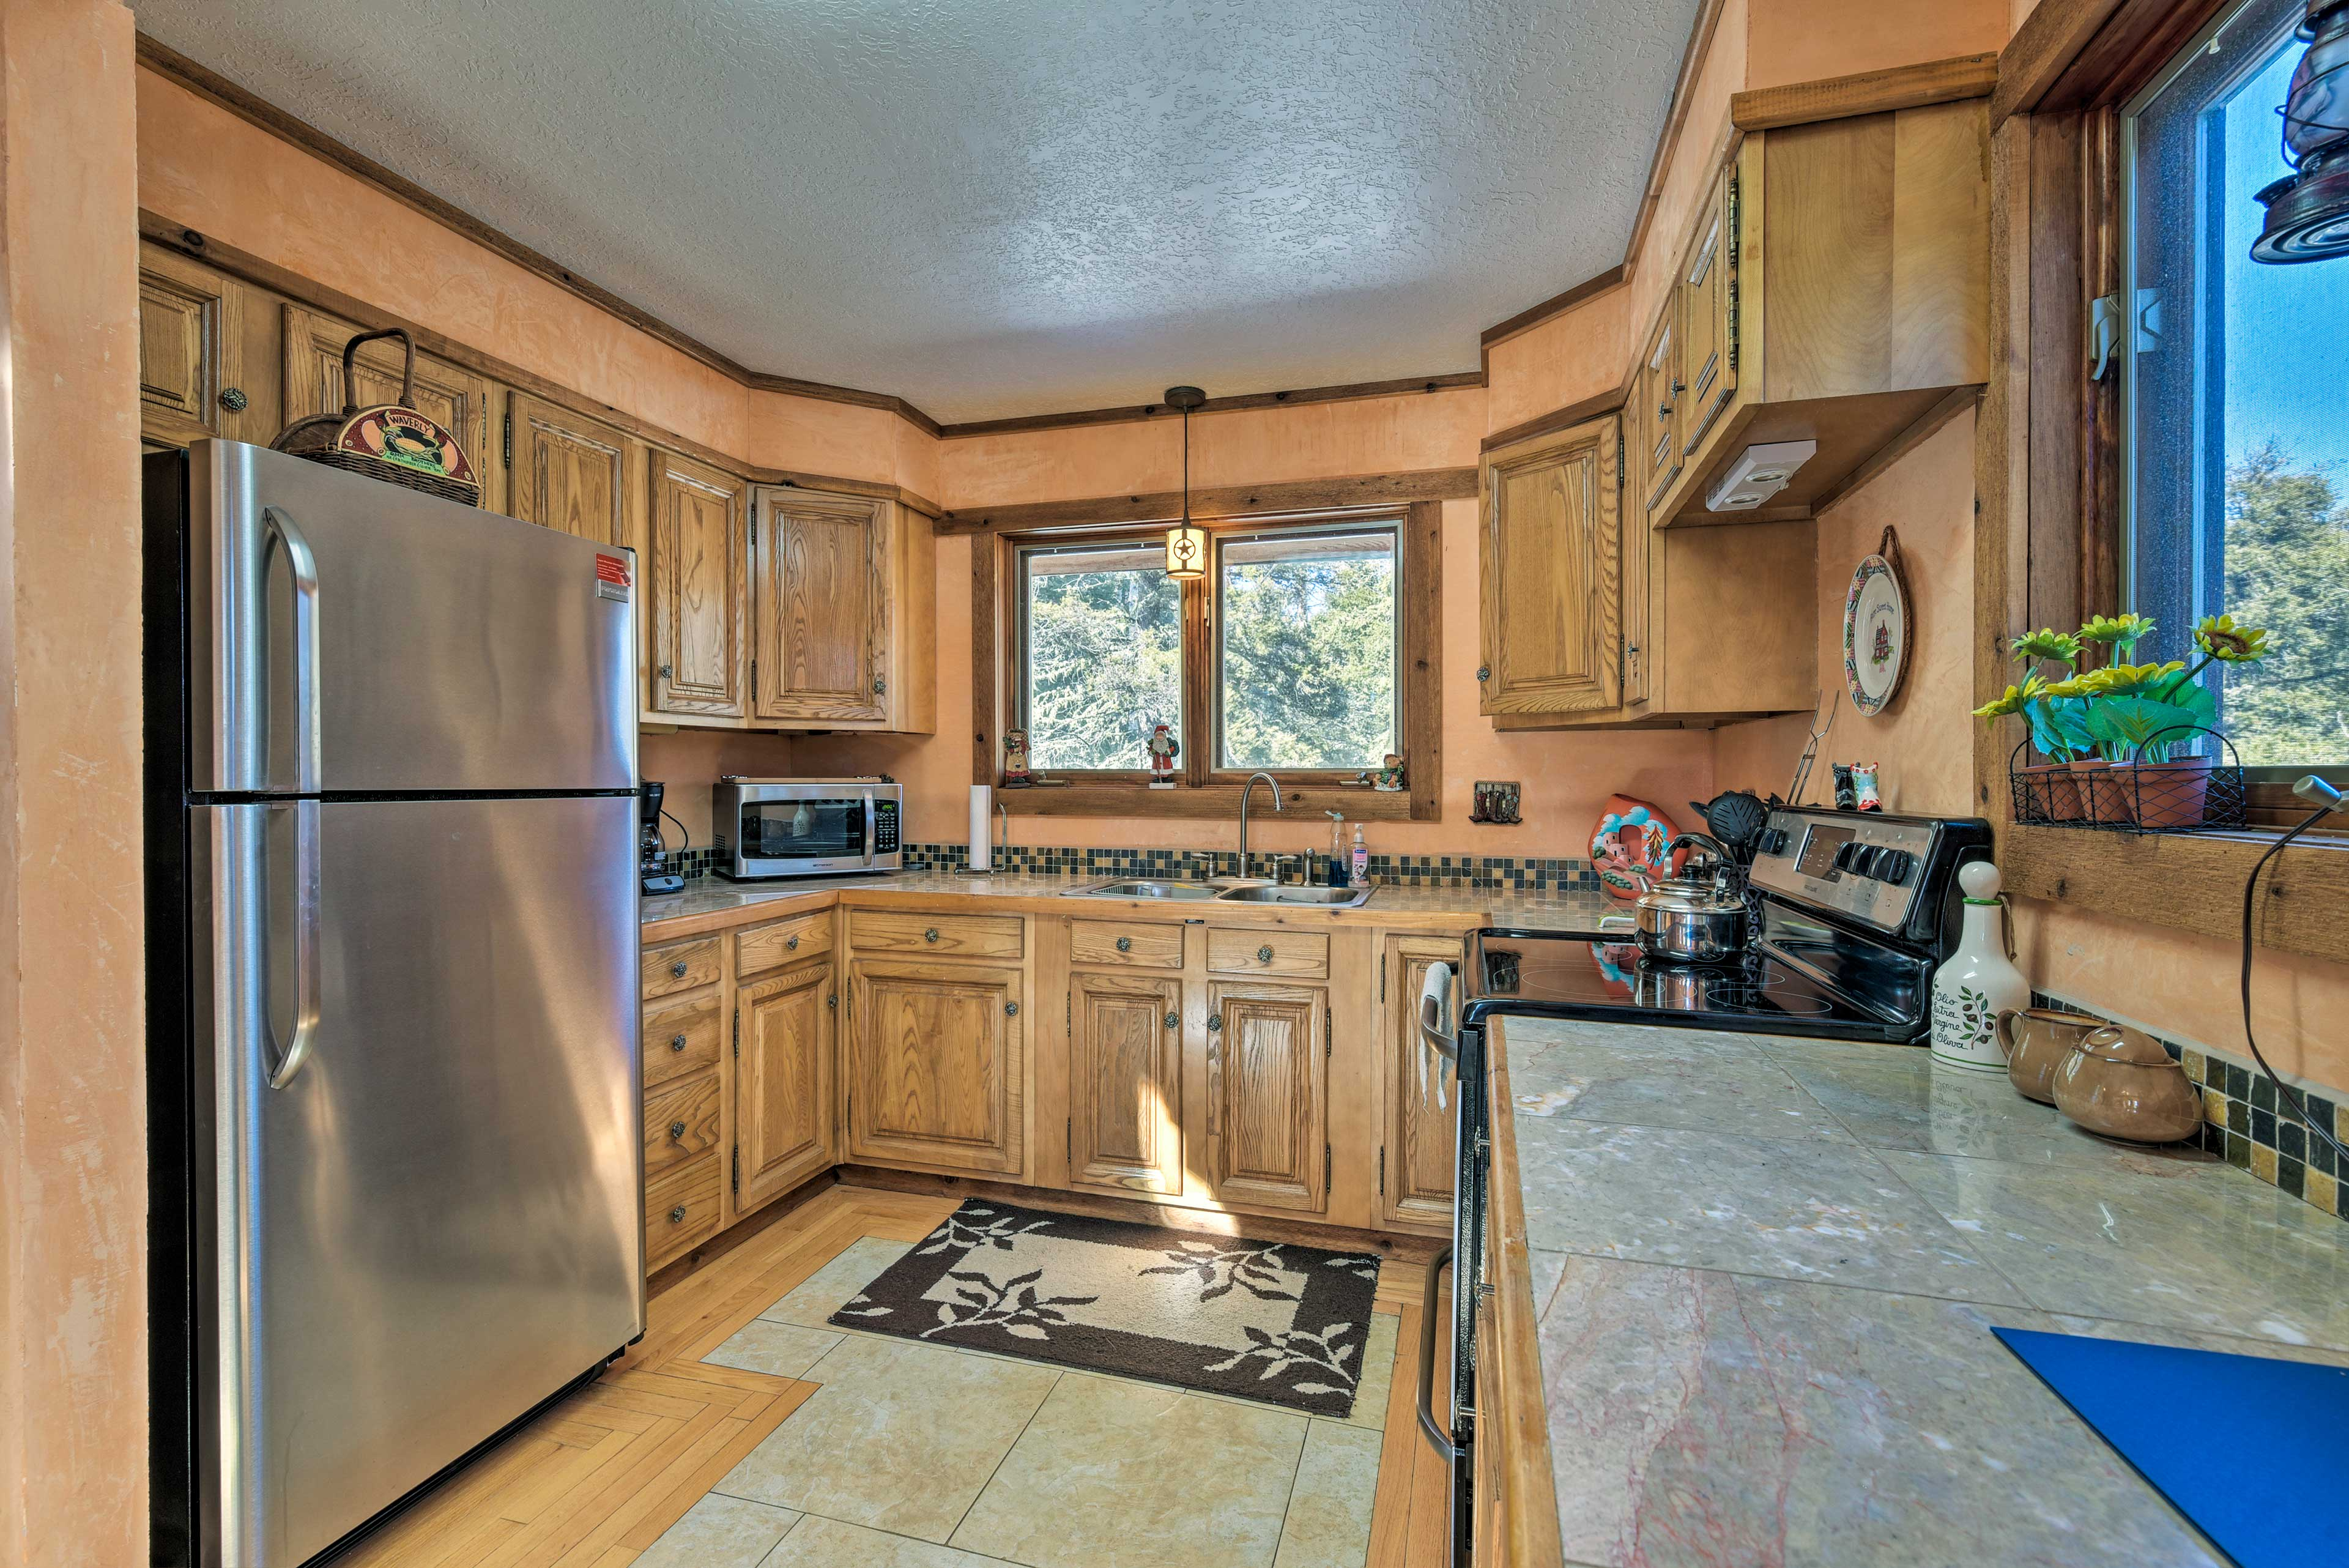 The well-equipped kitchen is stocked with all the appliances you'll need.